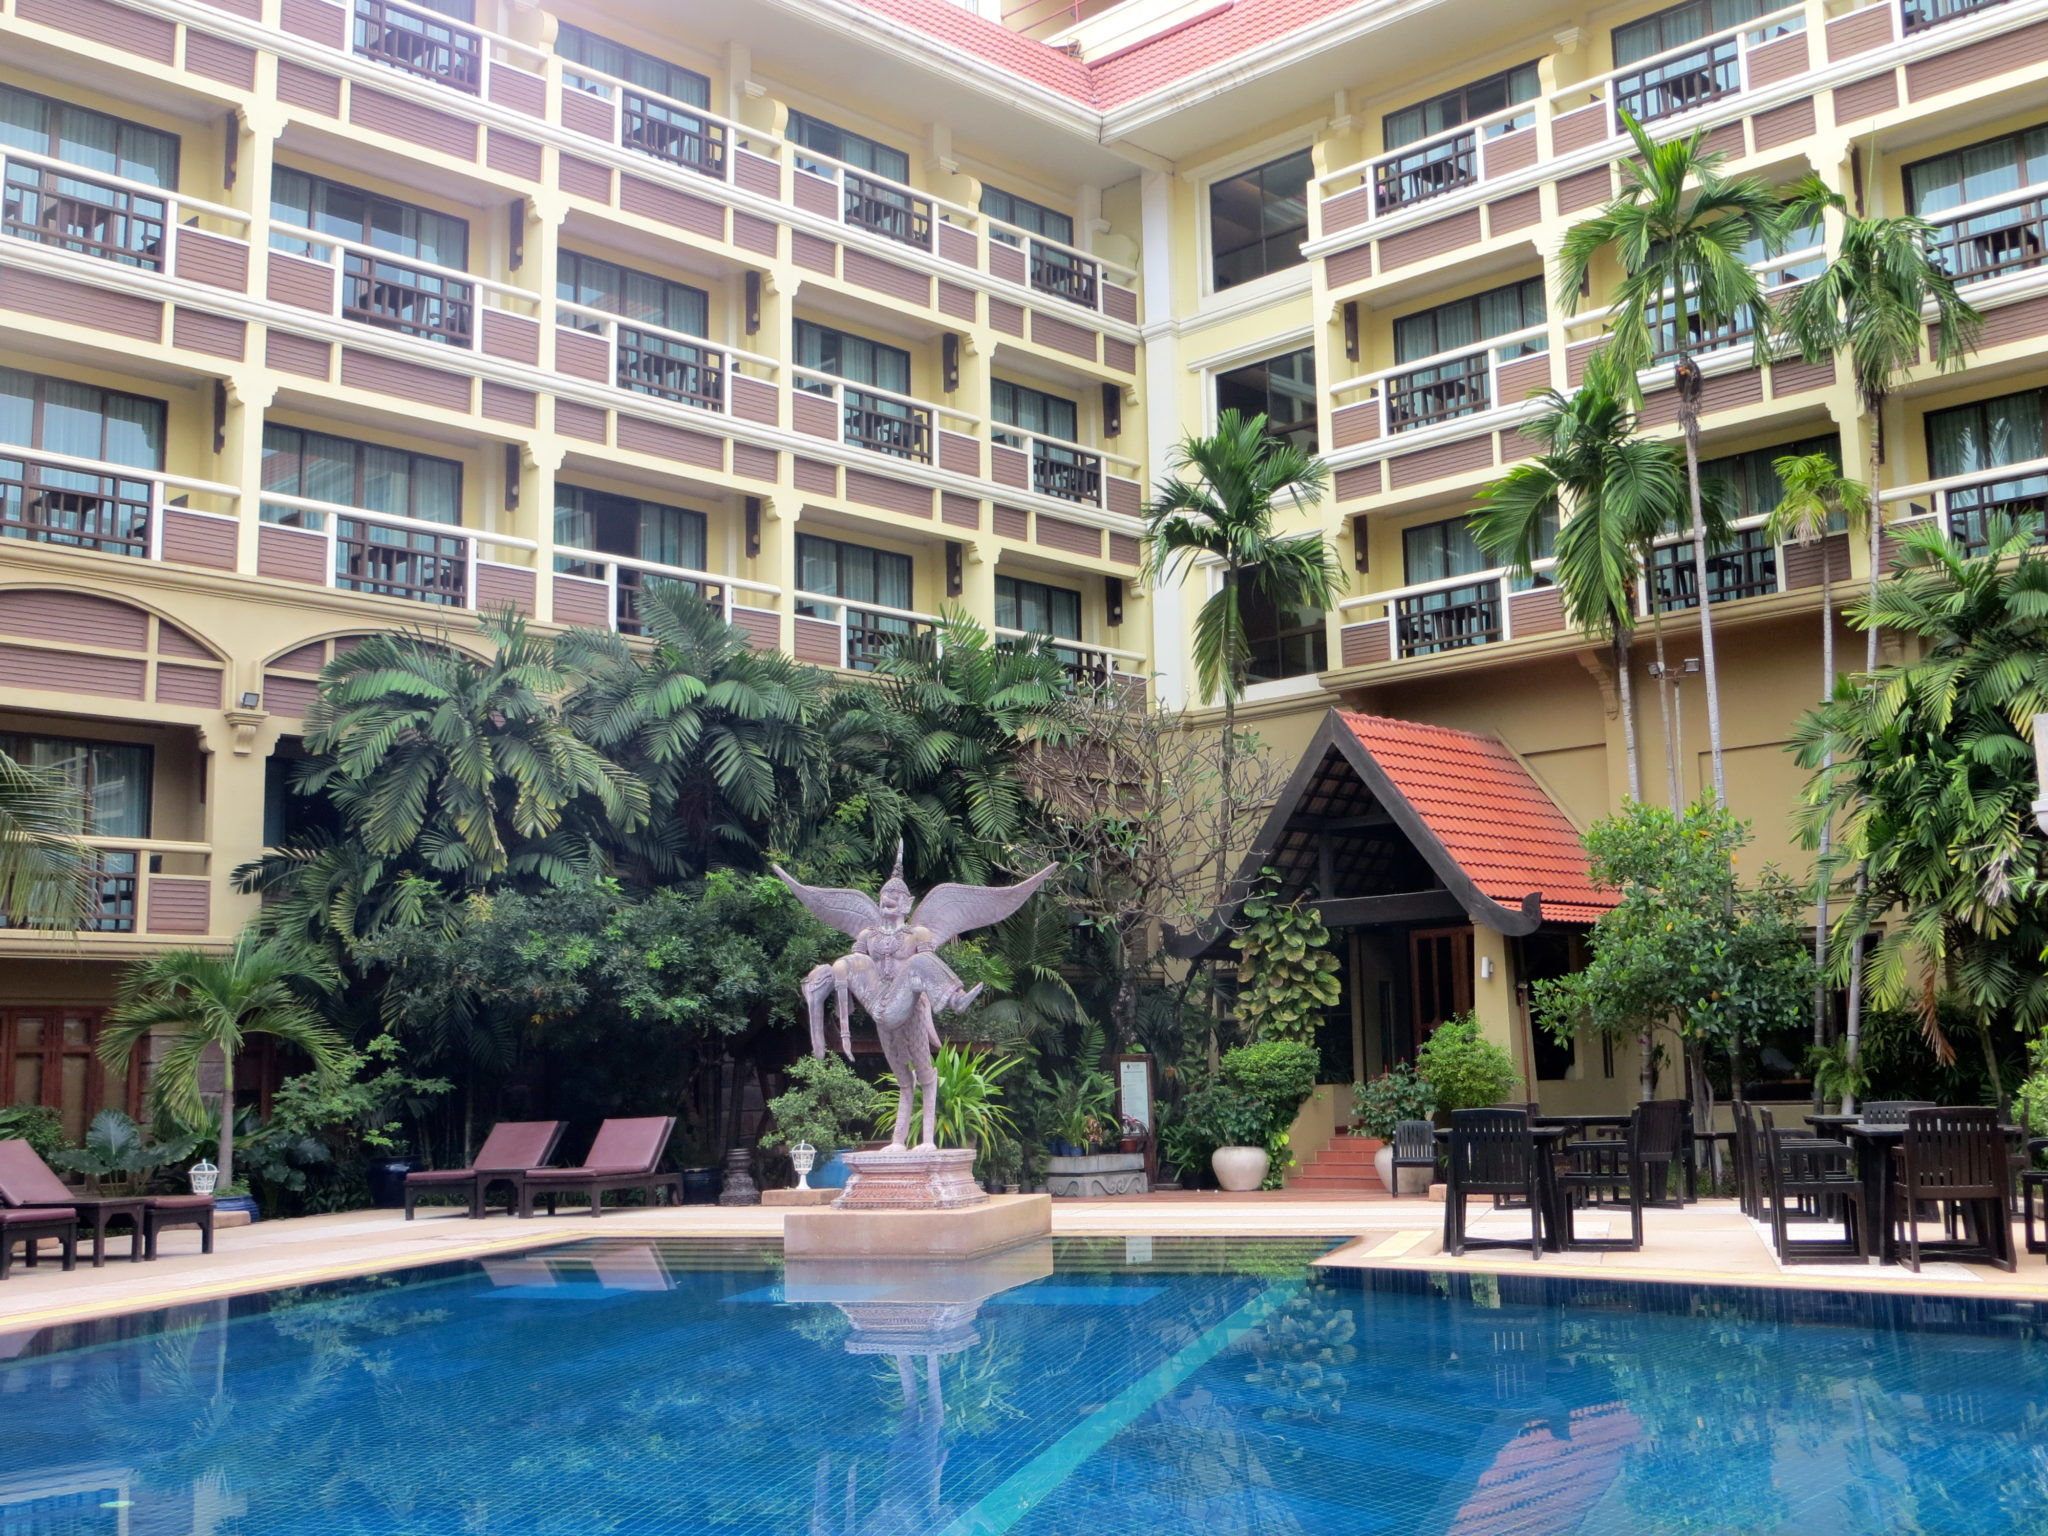 Siem Reap  Prince D'angkor Hotel  Would Buy Again. Dnipro Hotel. Mercure Budapest Metropol Hotel. Hotelcomplex Lazur. Hotel Del Rio. Hotel Europe And Spa. Sanctuary Resort. Hotel Osuna. Holiday Inn Express Hotel & Suites Irapuato